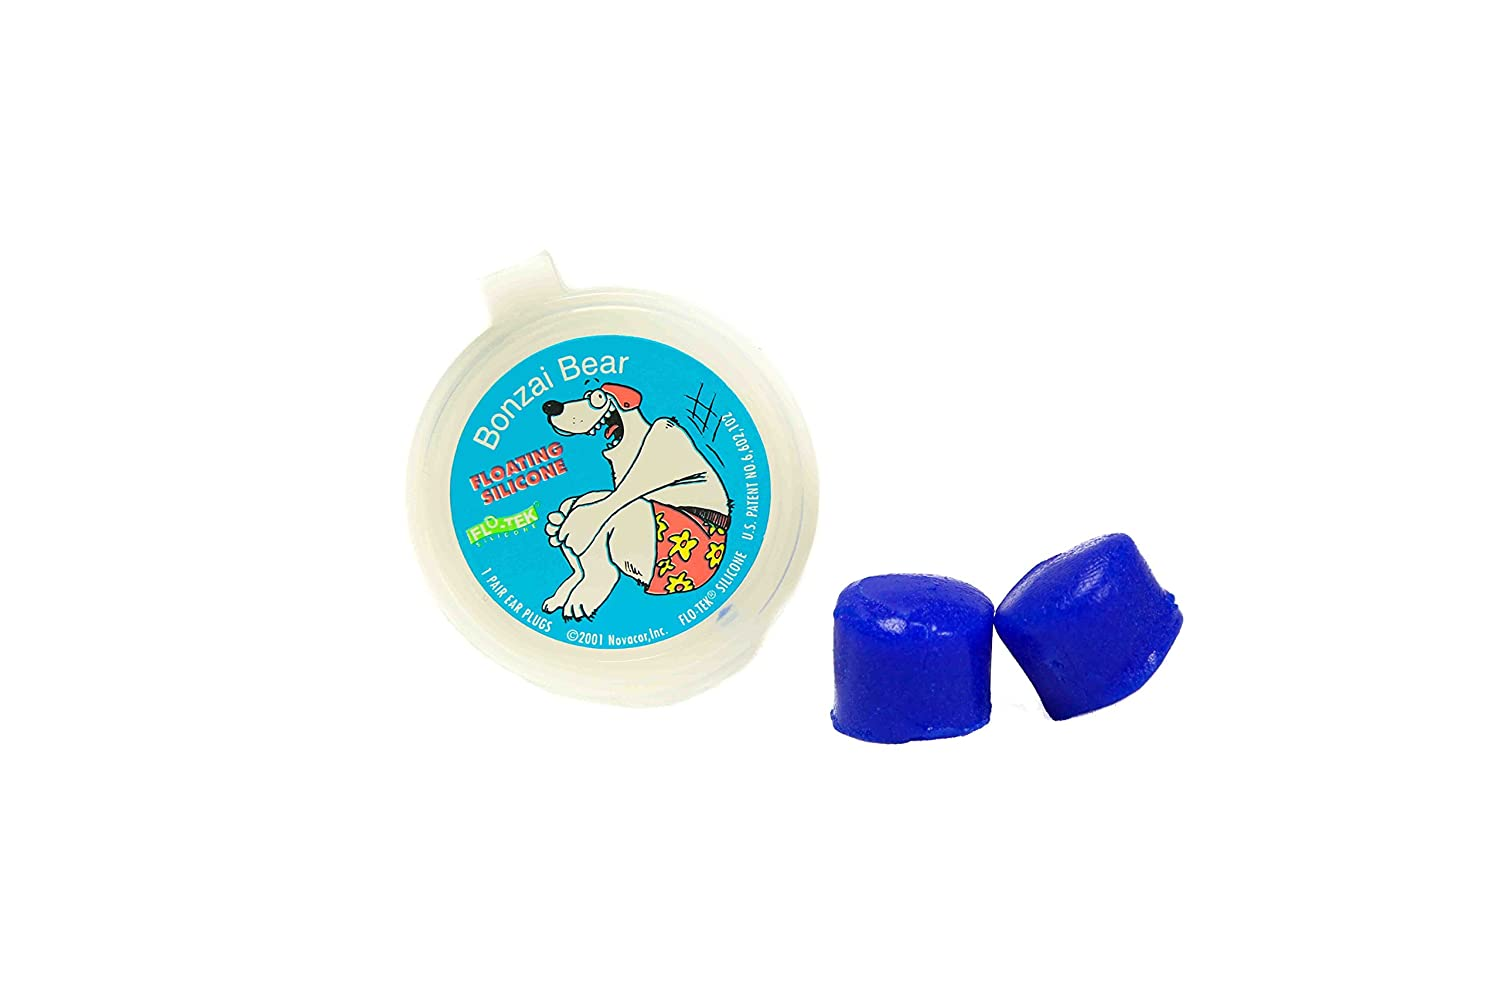 Putty Buddies Floating Earplugs 10-Pair Pack - Soft Silicone Ear Plugs for Swimming & Bathing